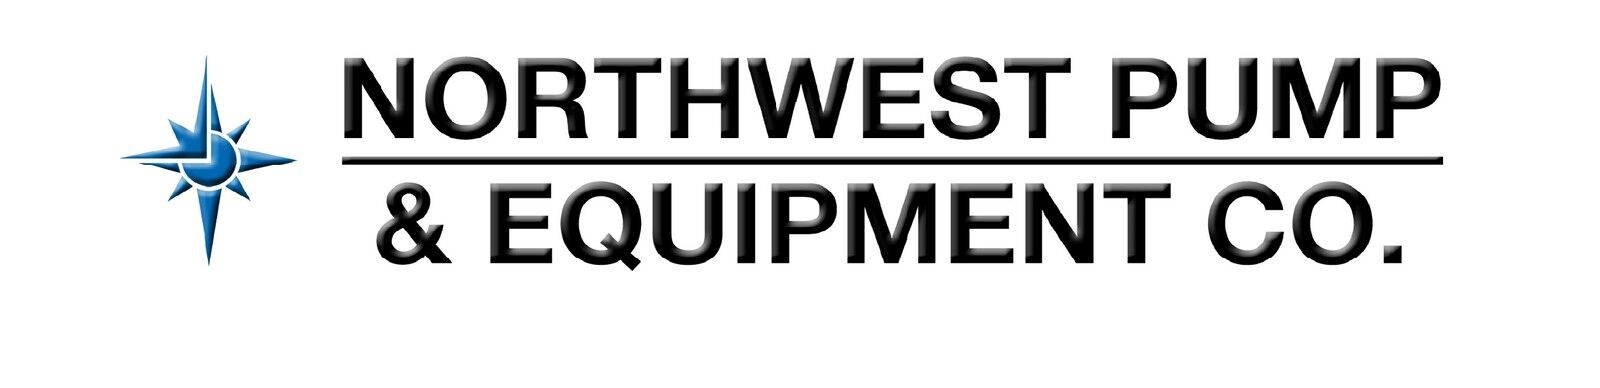 Northwest Pump and Equipment Co